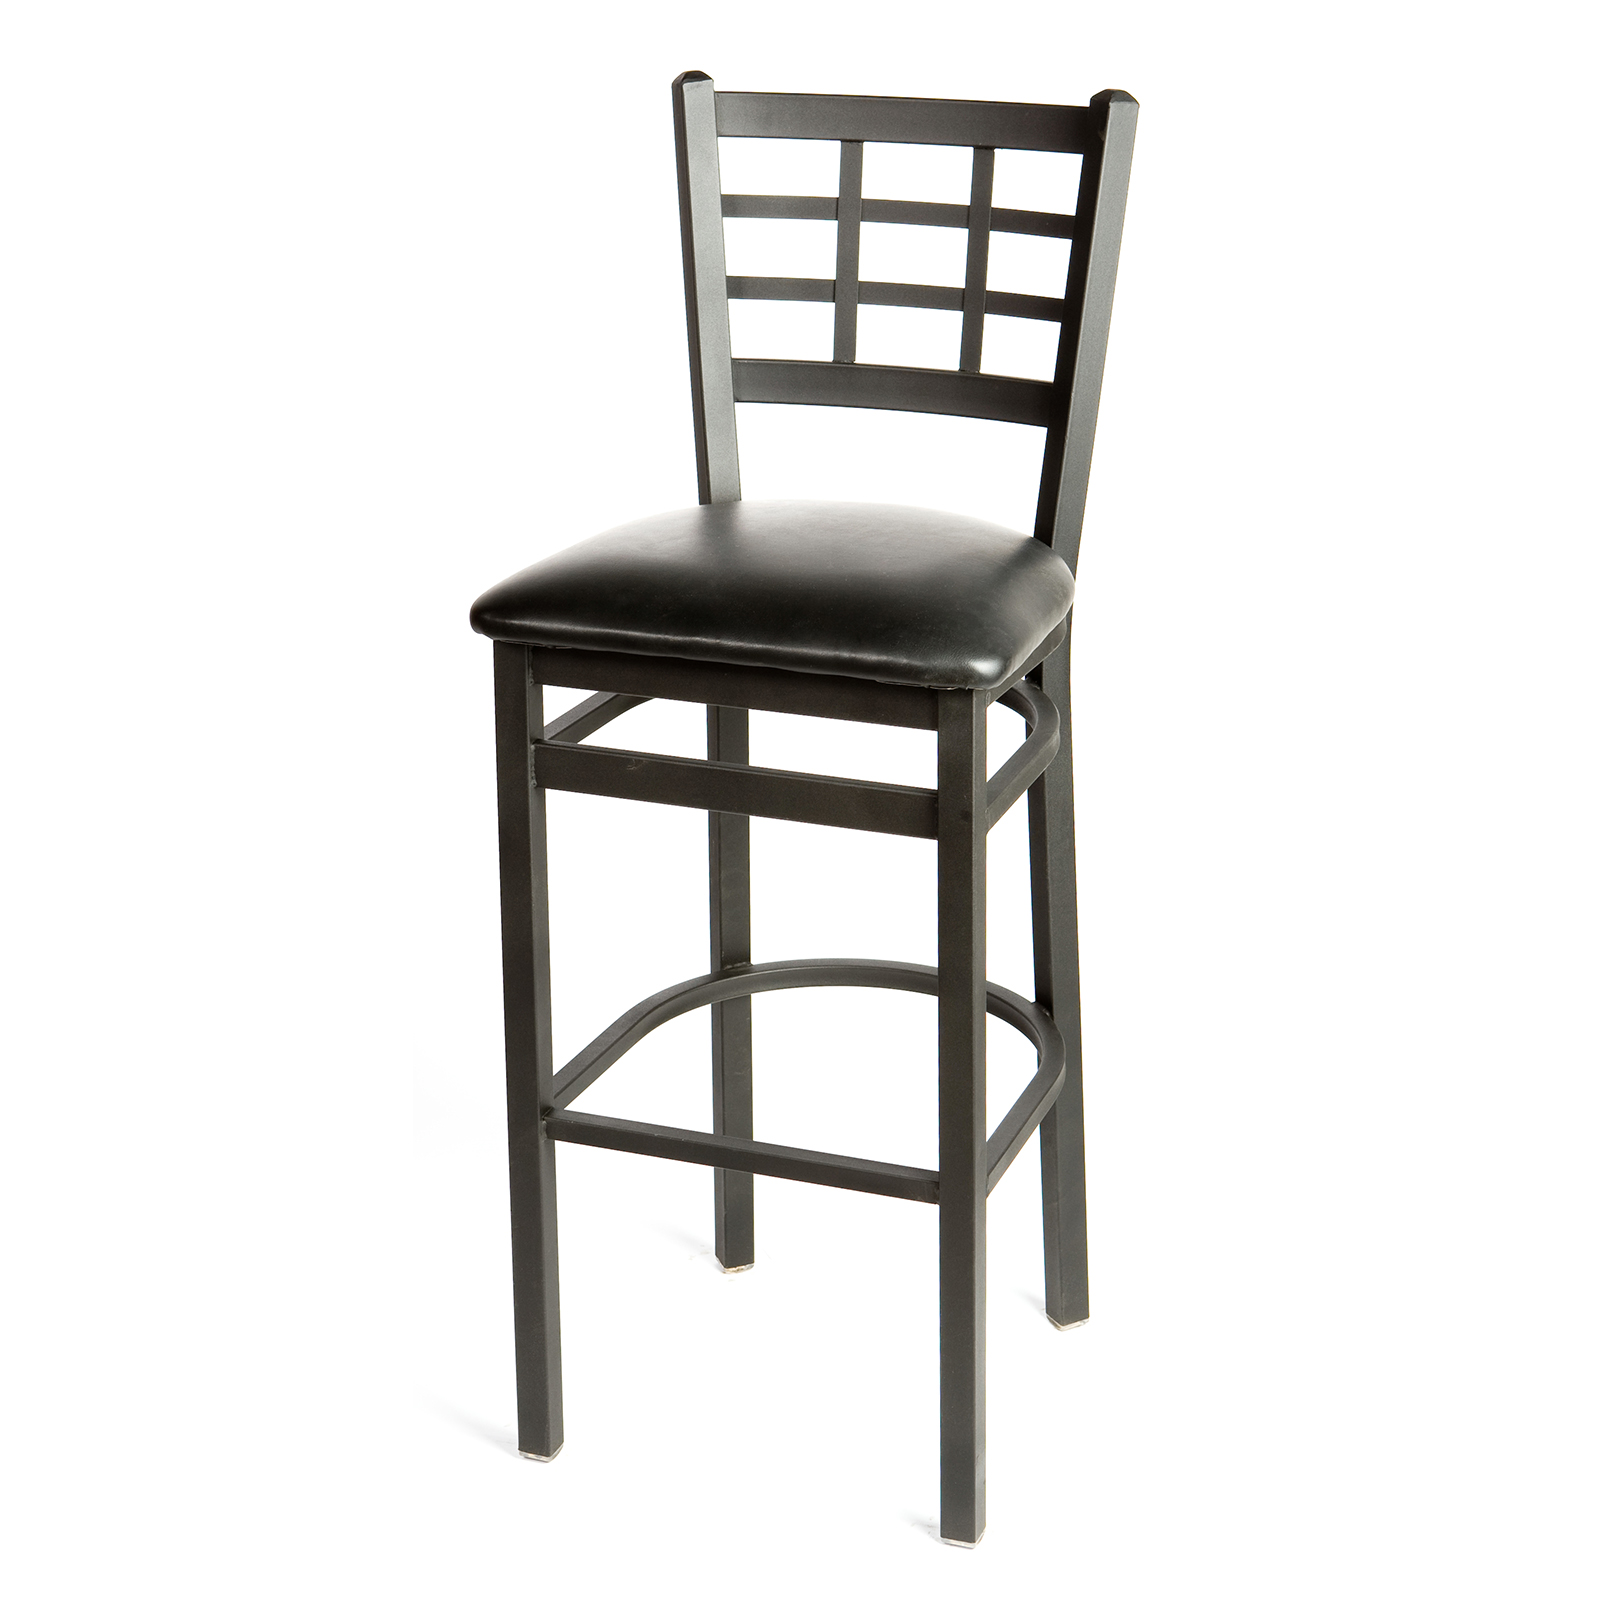 Oak Street SL2163-1 bar stool, indoor